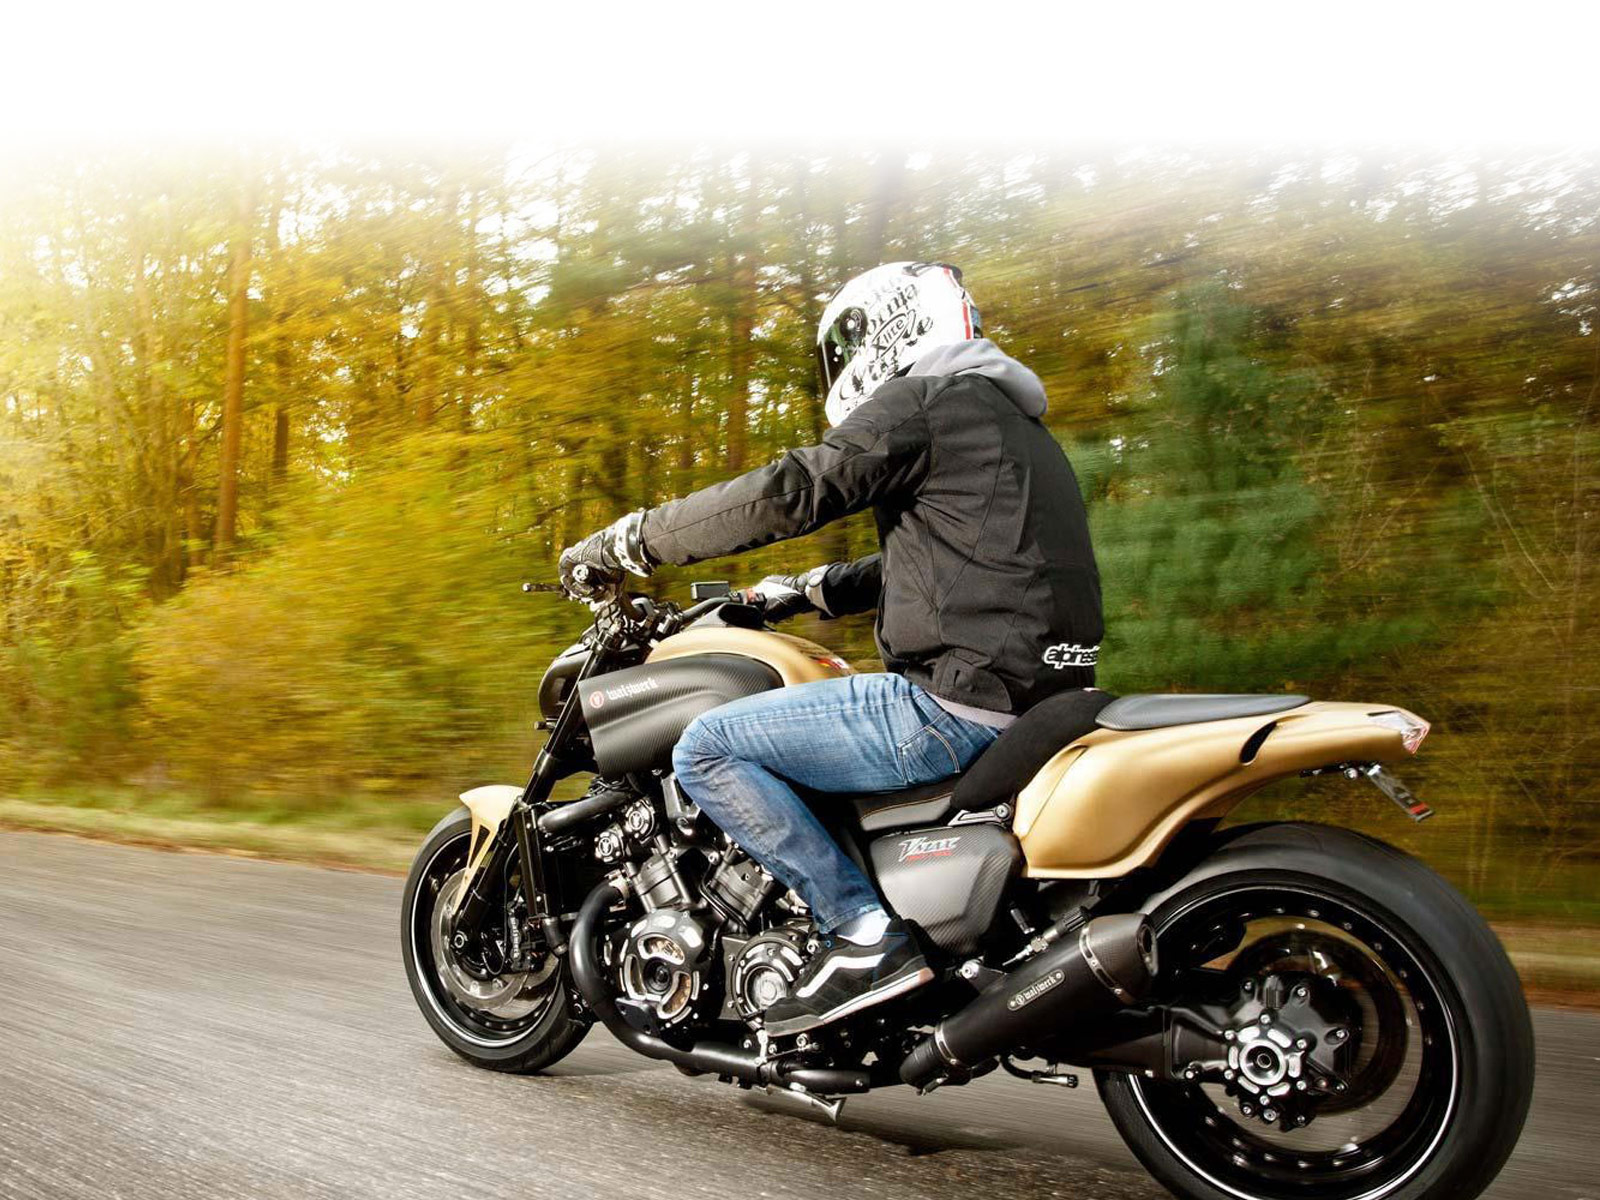 Yamaha VMAX Hyper Modified Marcus Walz 2013 images #92100